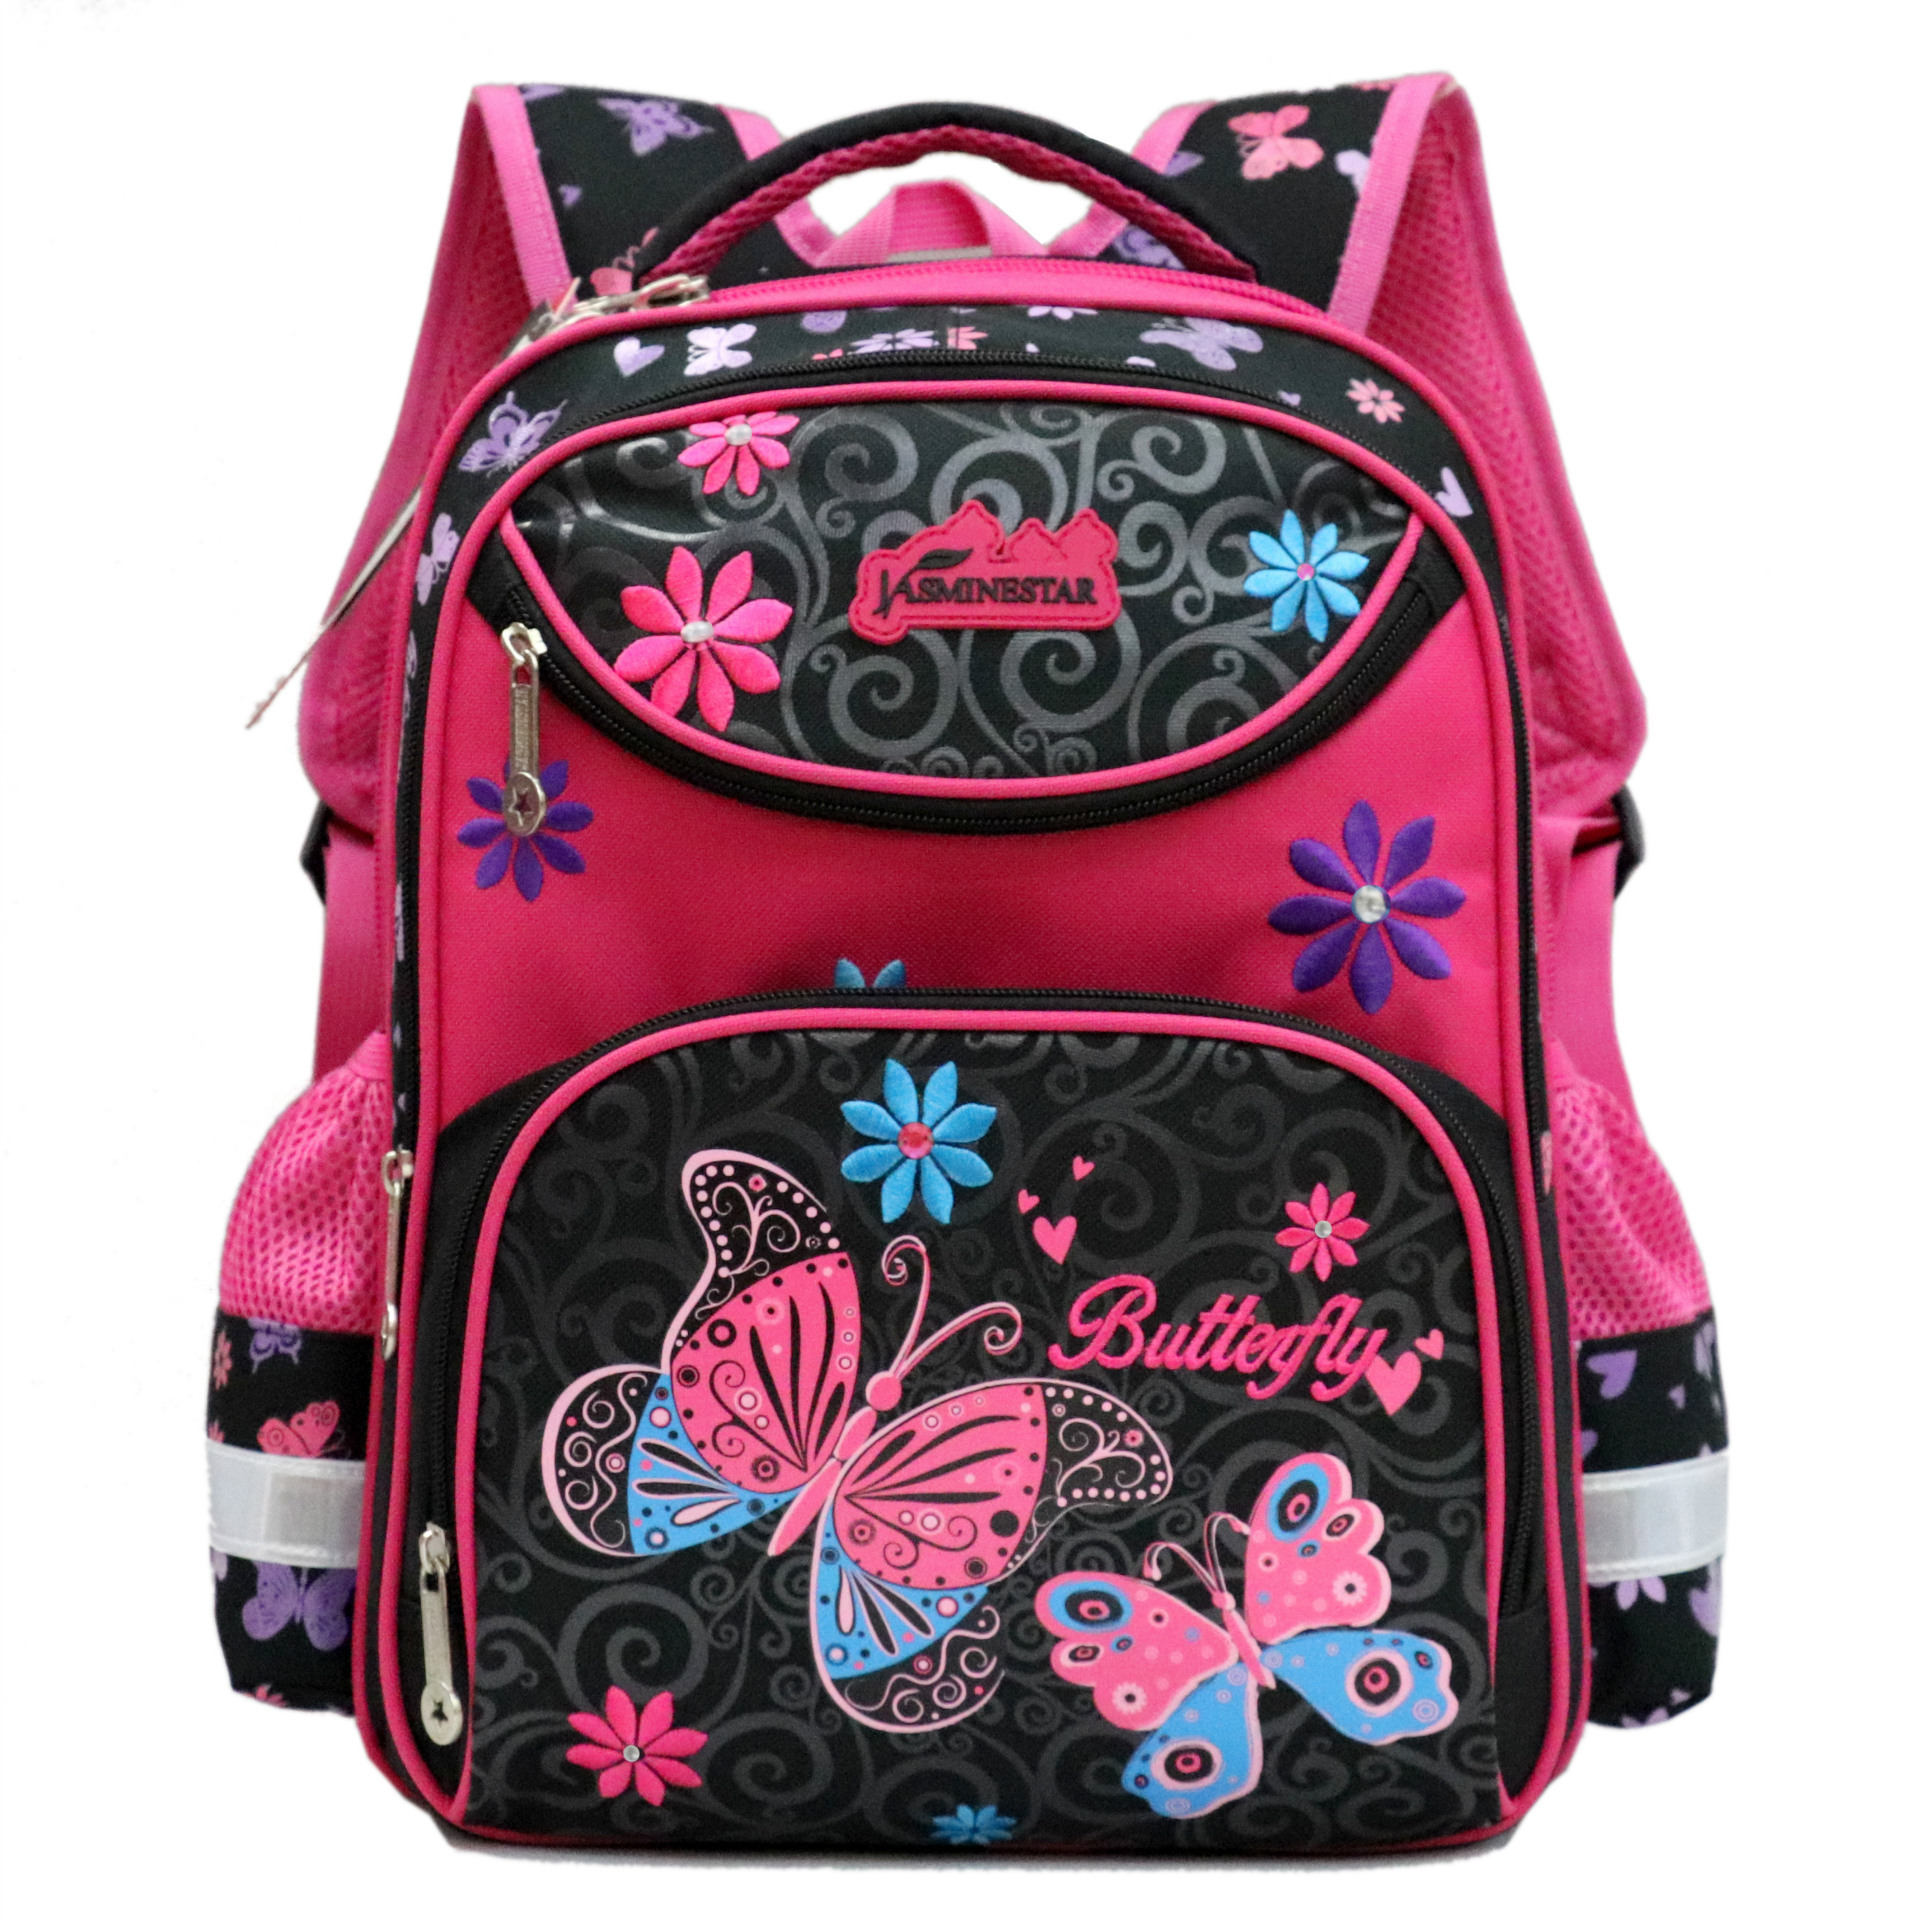 2018 New Children School Bags for Girls Butterfly Travel Backpacks for Teenagers Primary School Backpacks Mochila Infantil2018 New Children School Bags for Girls Butterfly Travel Backpacks for Teenagers Primary School Backpacks Mochila Infantil